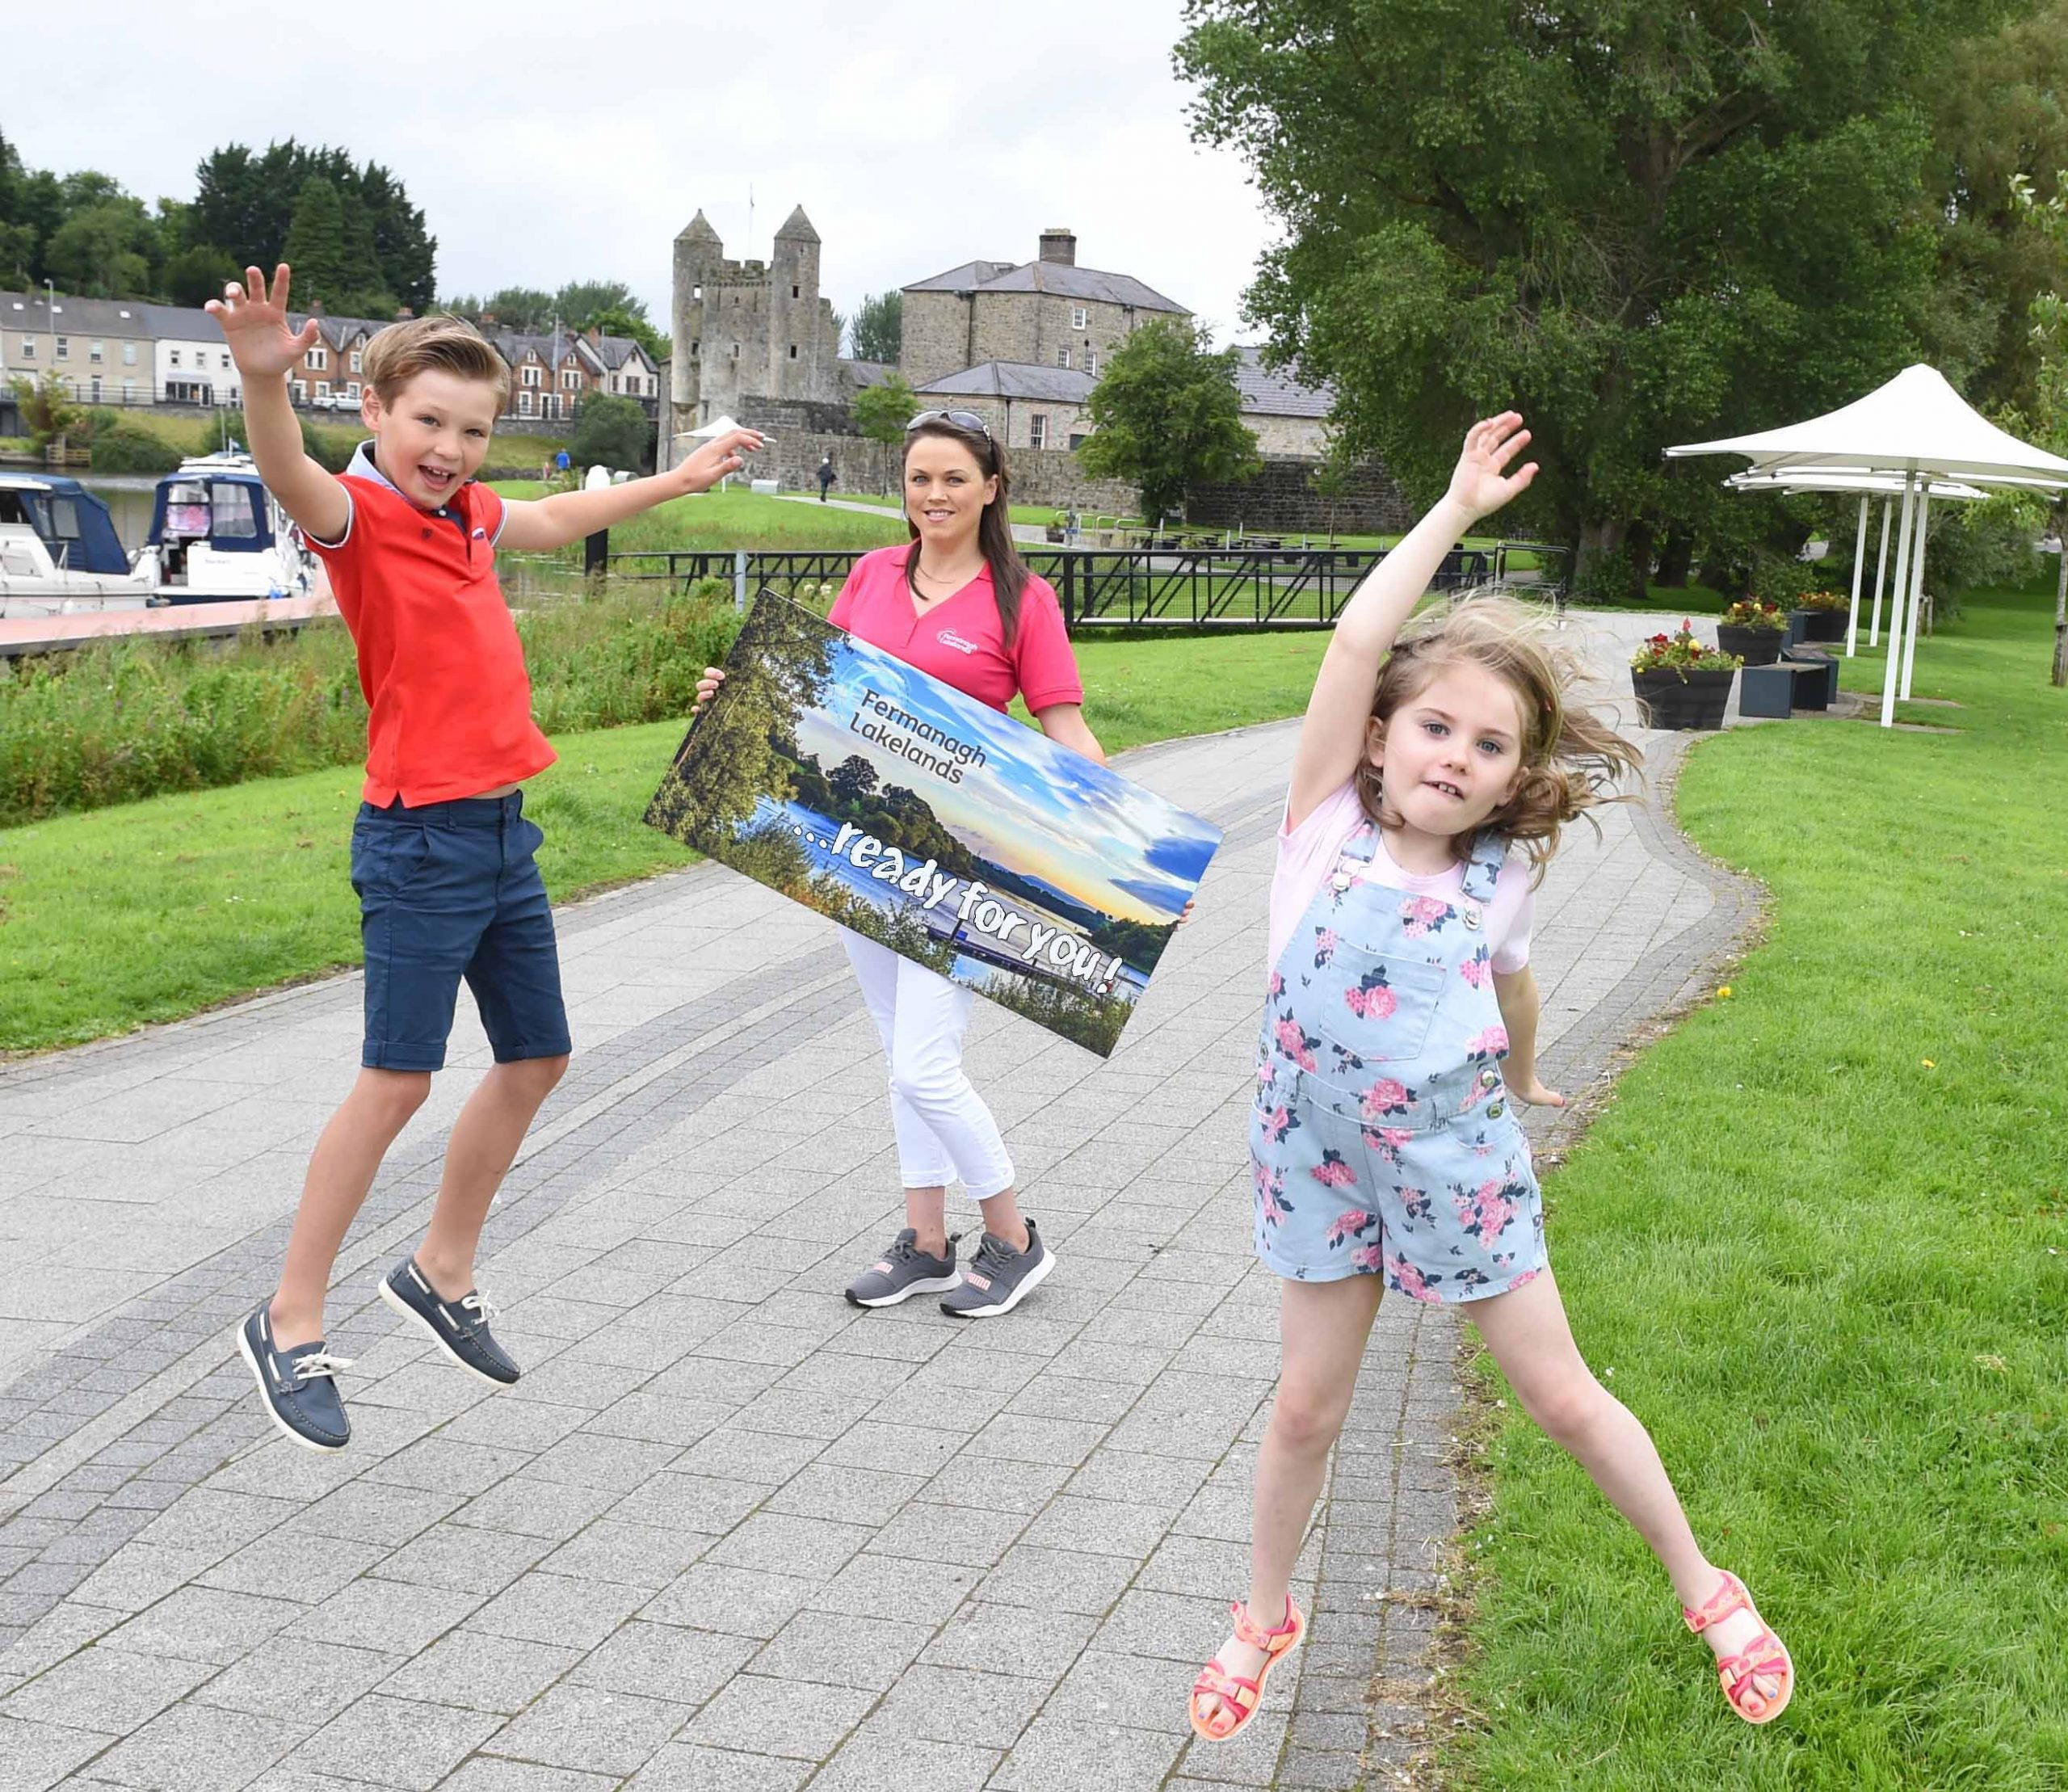 As Covid-19 restrictions ease, more and more people are looking forward to a much-needed break and Fermanagh Lakeland Tourism has reported a significant increase in staycation enquiries in the county over the last four weeks. It's new marketing initiative Ready For You aims to encourage holiday makers to book a staycation and enjoy everything that the Lakeland County has to offer. Visit www.fermanaghlakelands.com to plan your staycation today! Pictured as they get ready for a fun filled break in Co. Fermanagh are (L-R) Wilson Grey, Julie McKiernan of Fermanagh Lakeland Tourism and Eabha Smyth .